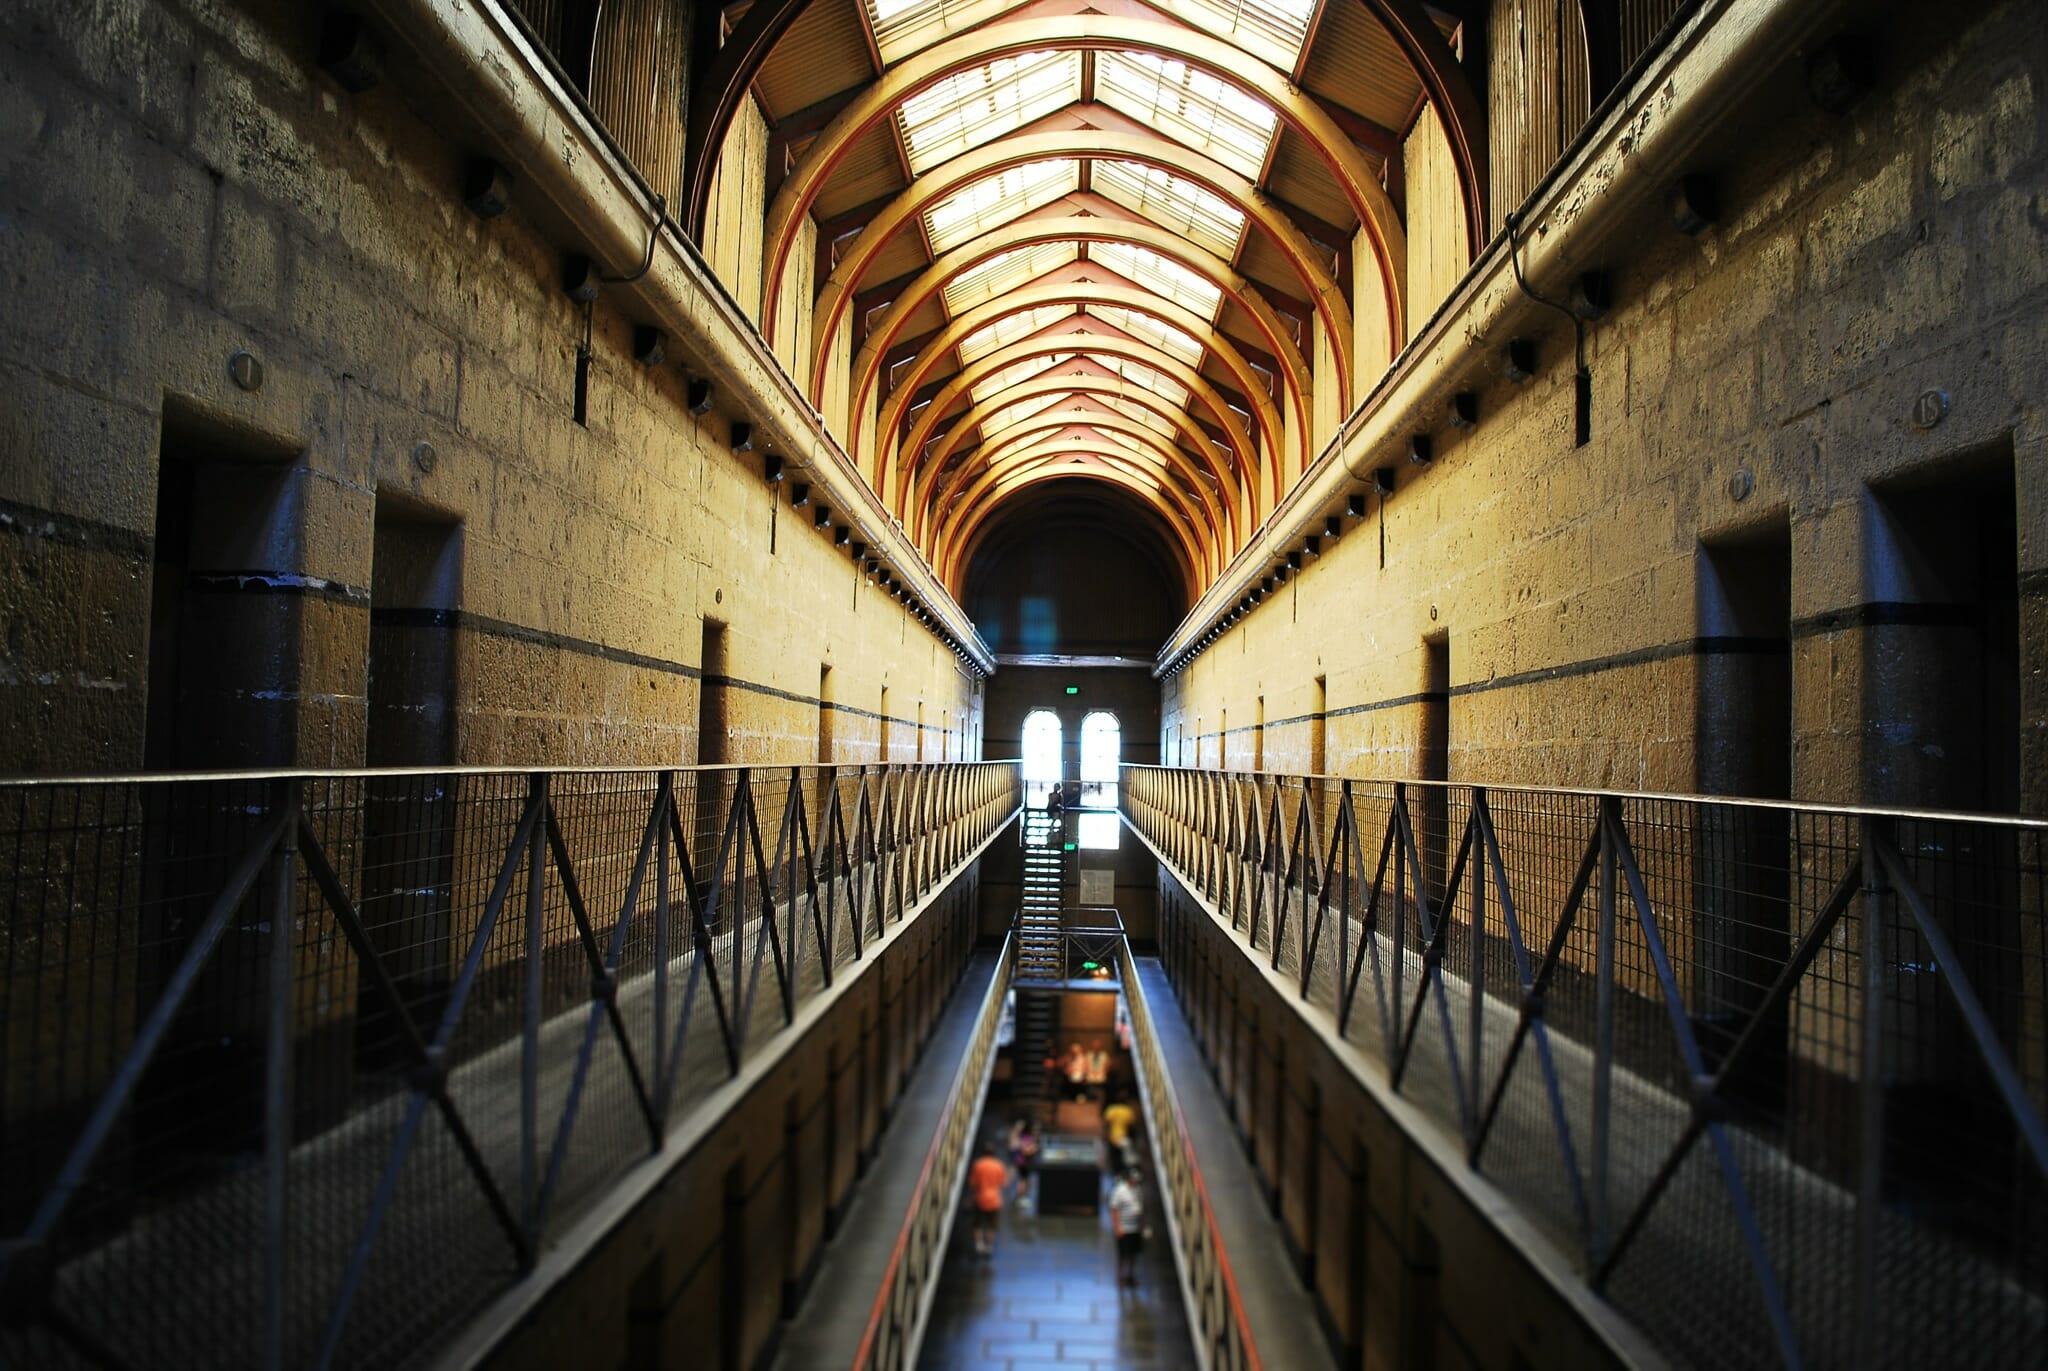 Little has changed since the Melbourne Gaol closed. Credit: Shutterstock